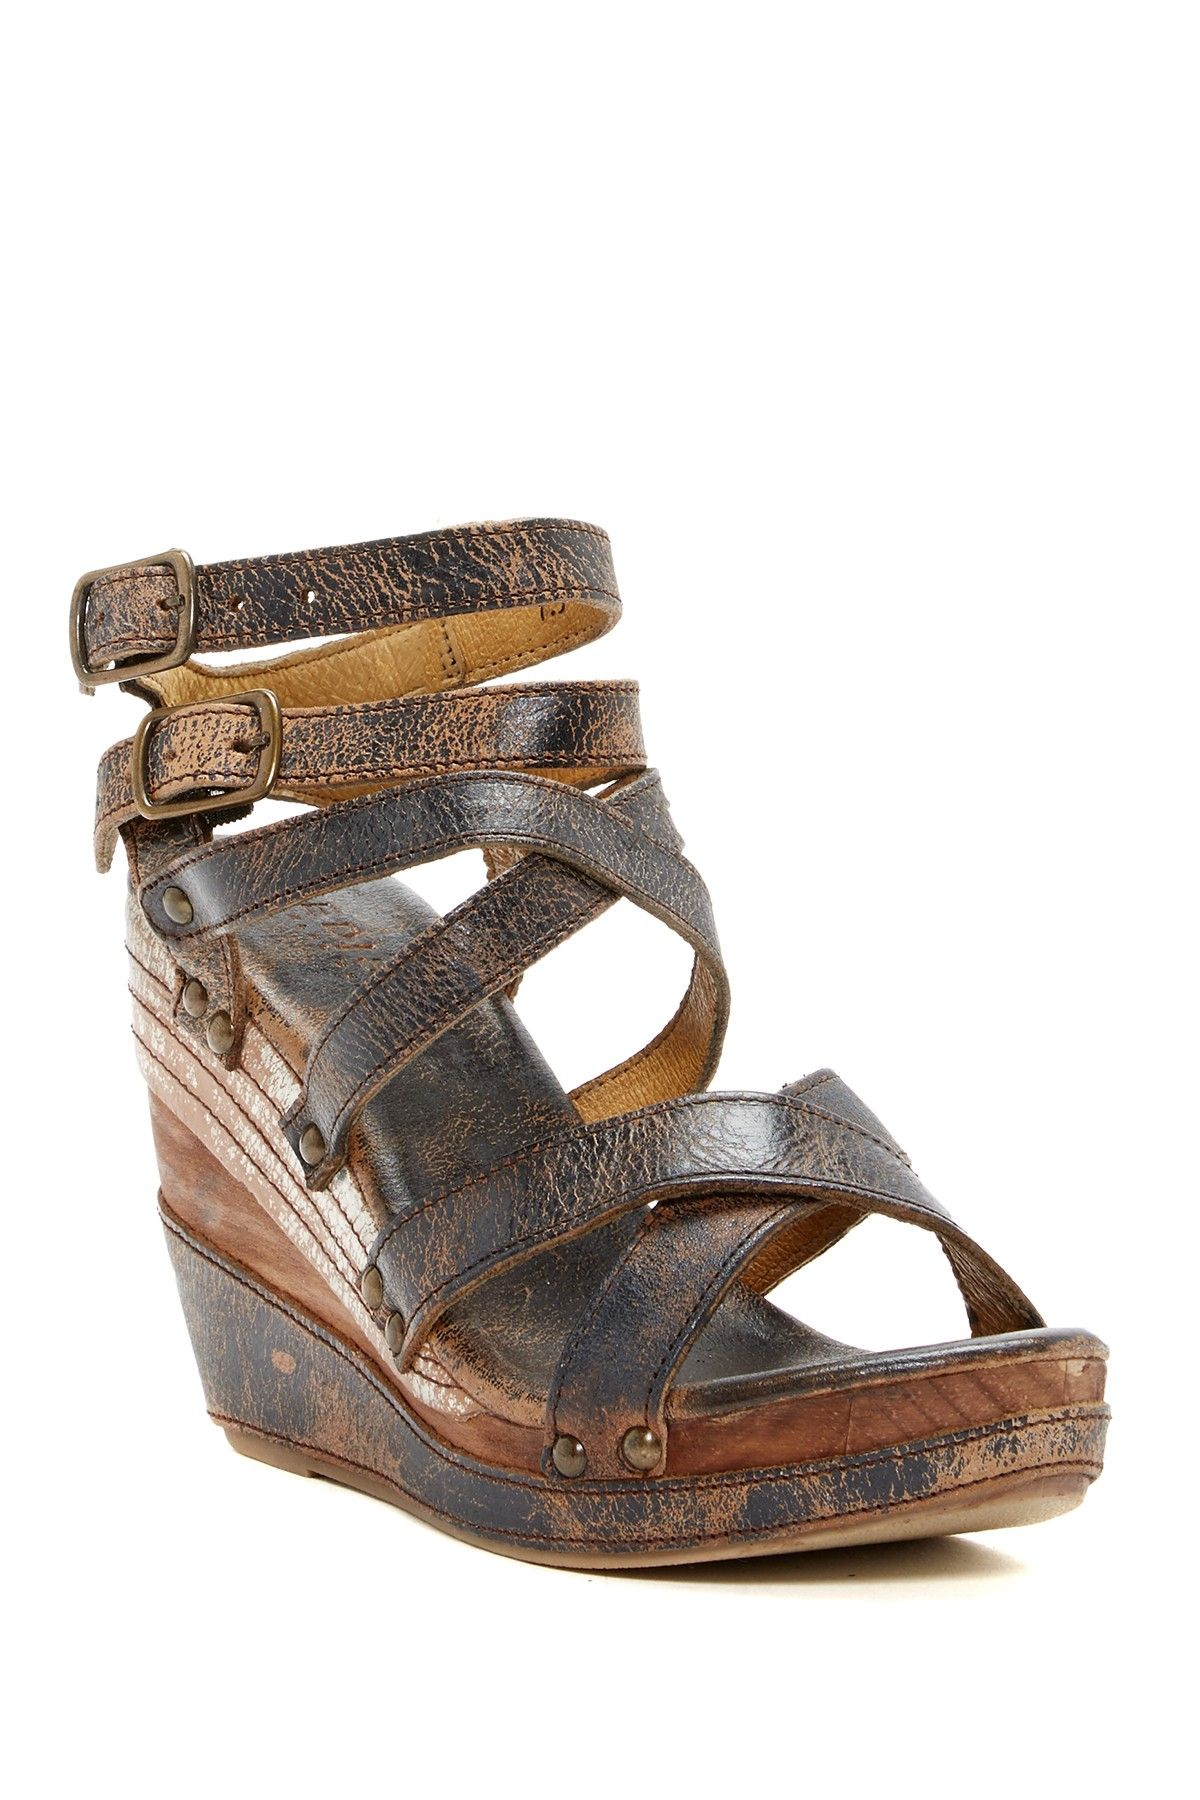 Selfless Women Sandals Clothing, Shoes & Accessories Sandals